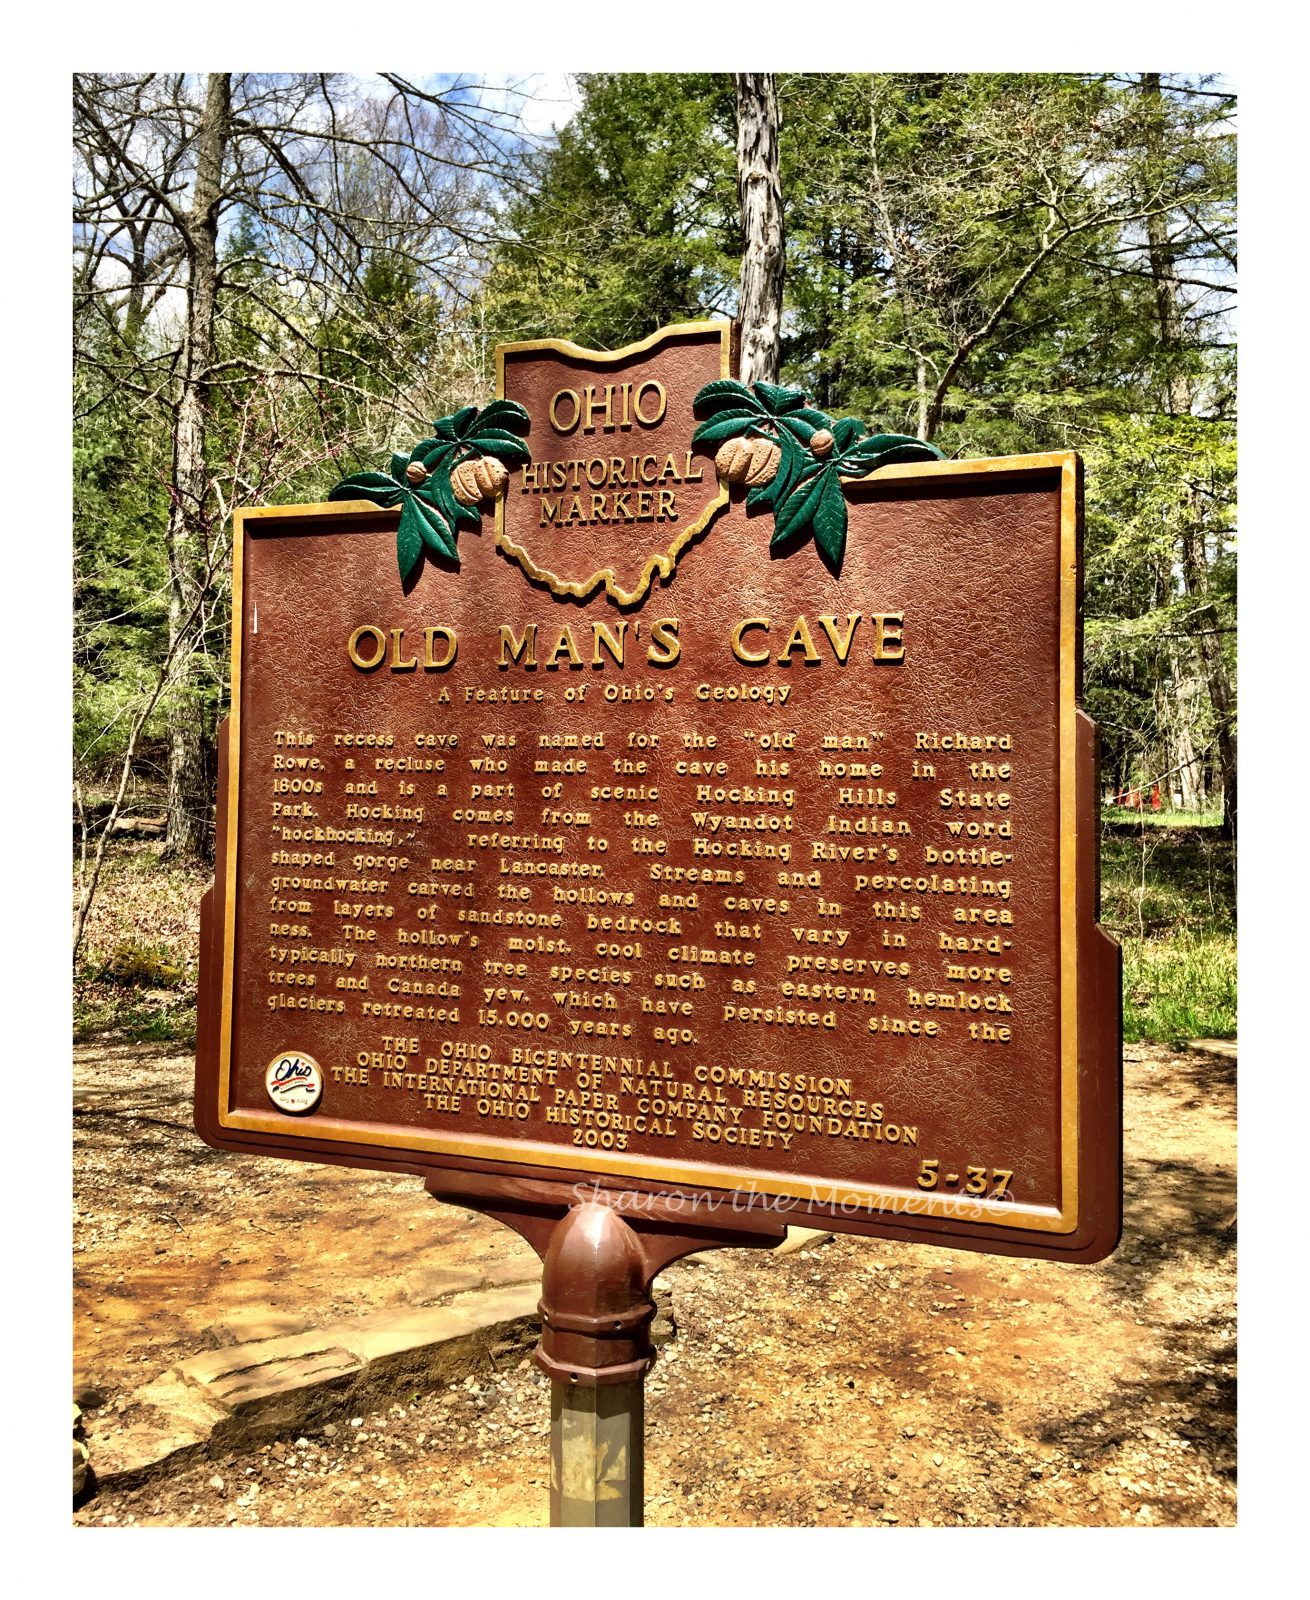 Remarkable Ohio Historical Marker #5-37 Old Man's Cave || Sharon the Moments Blog